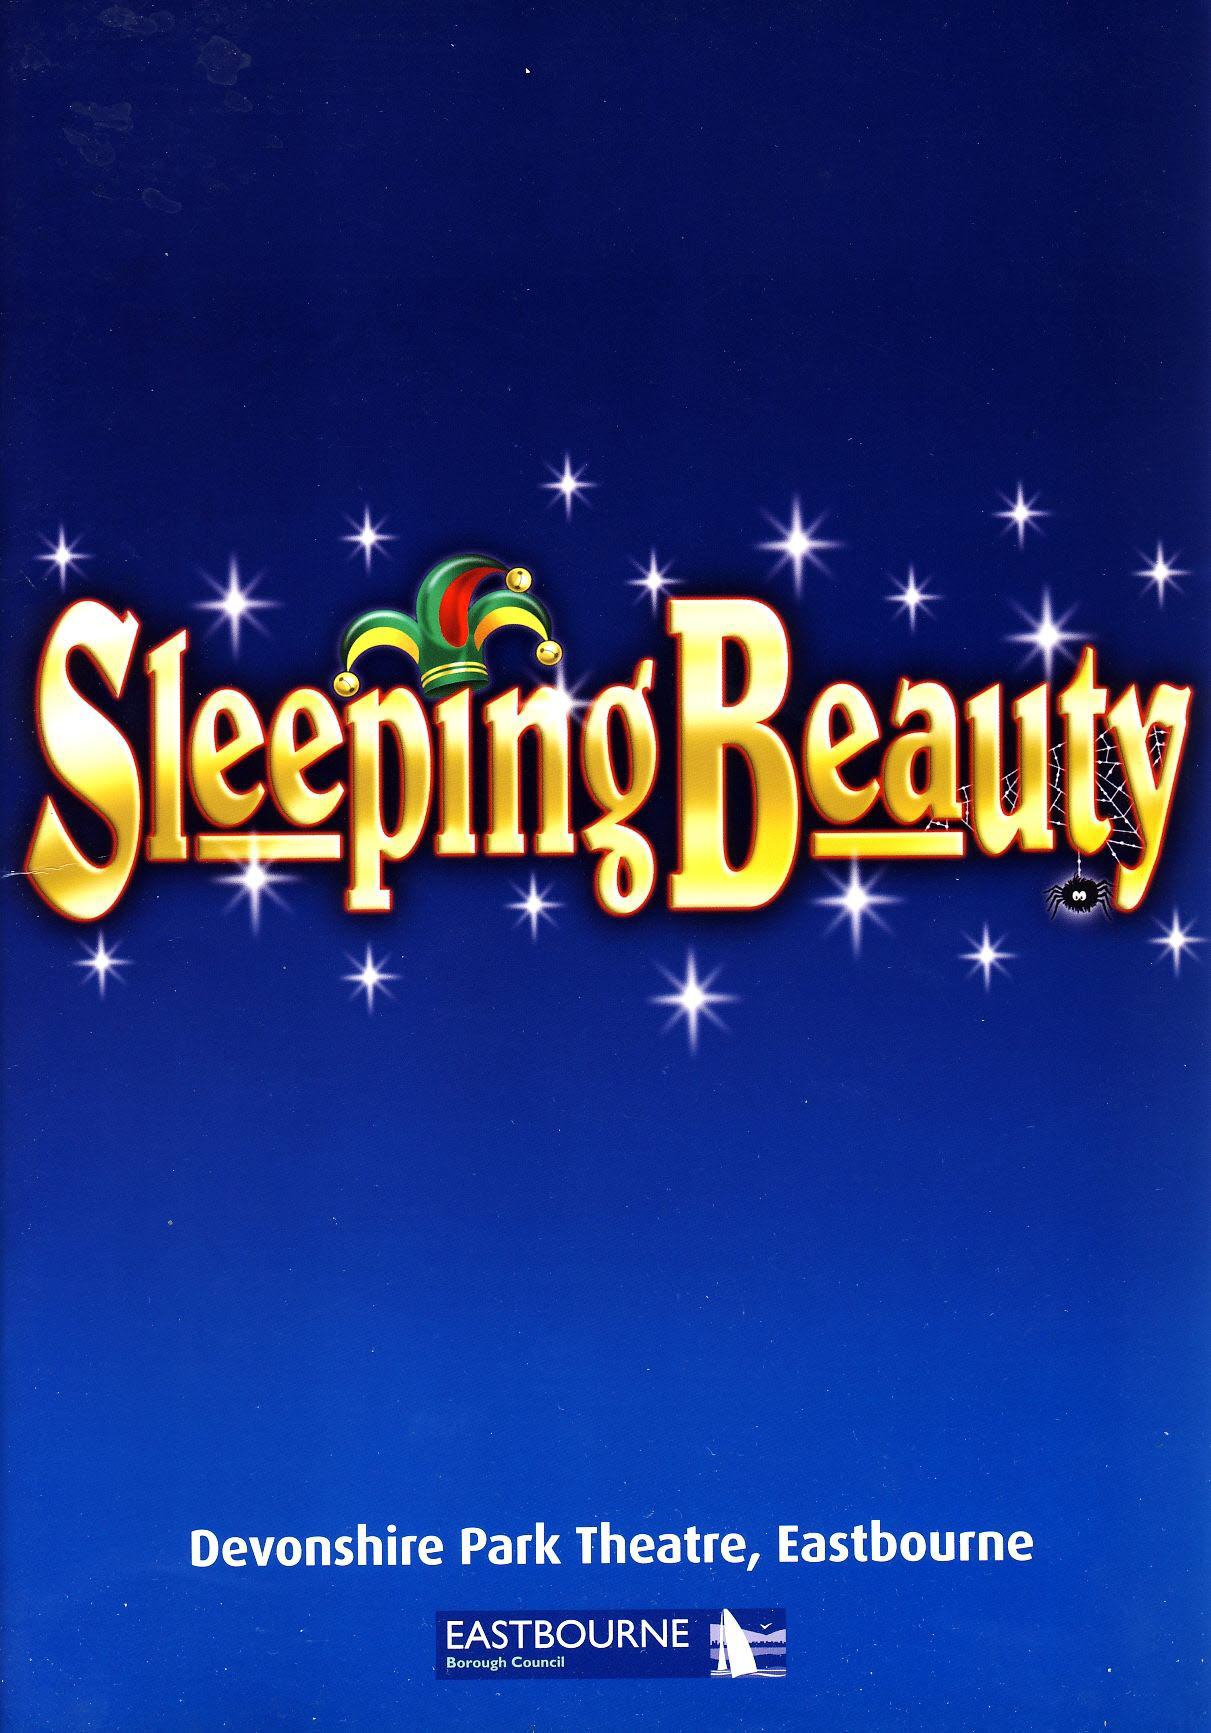 2013 Sleeping Beauty EASTBOURNE Theatre Programme refb101185 Pre-owned Programme in Very Good Condition. Measures approx 21cm x 29.5cm